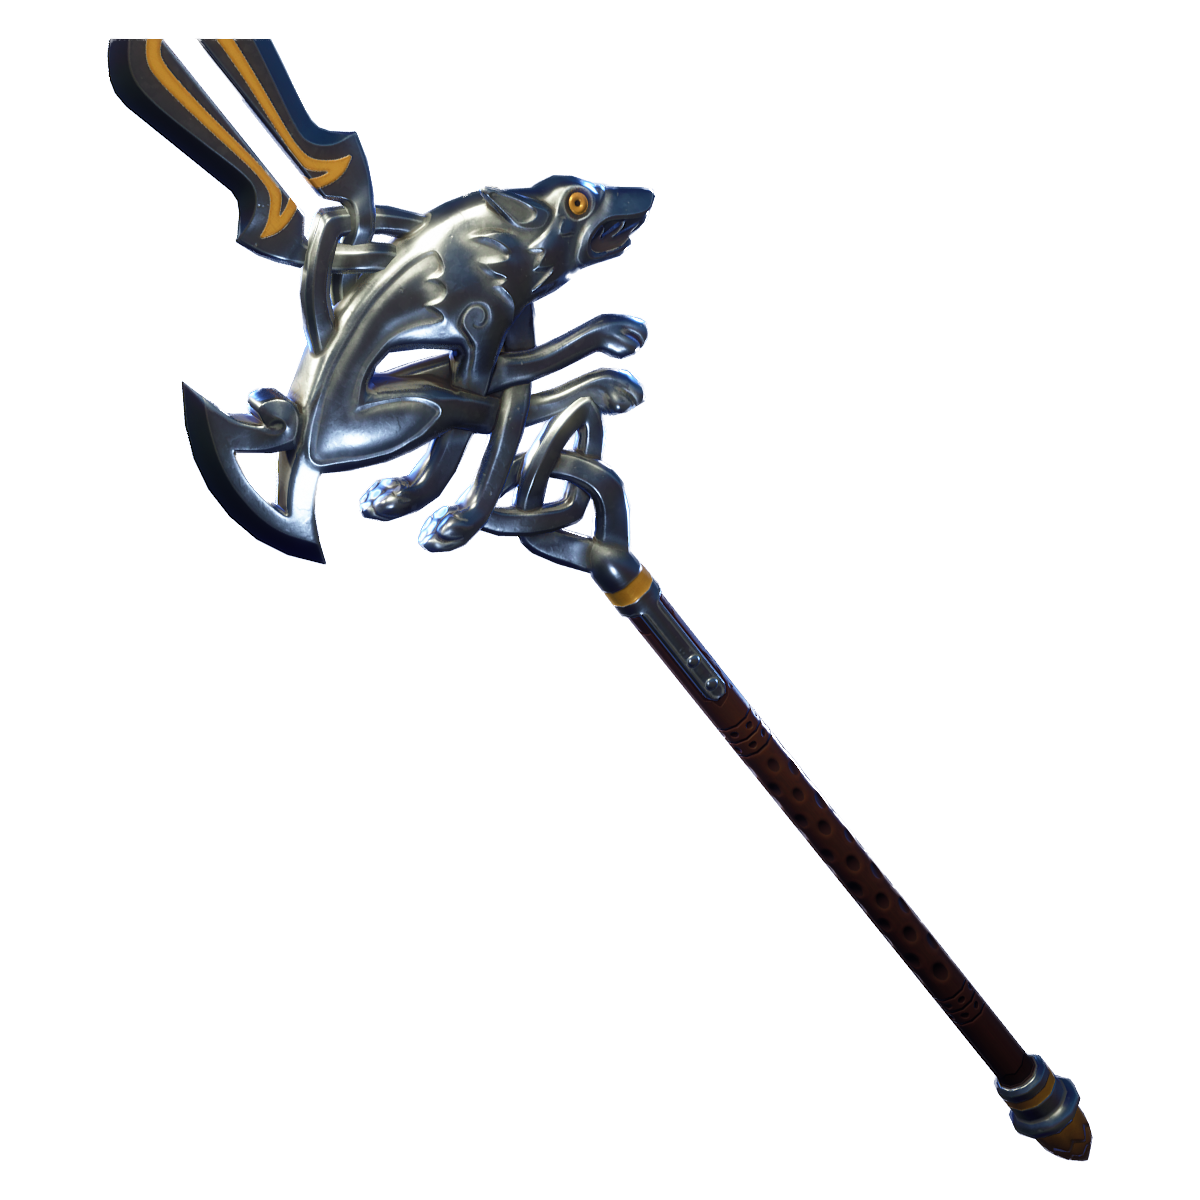 Gold scar fortnite png. Rare silver fang pickaxe